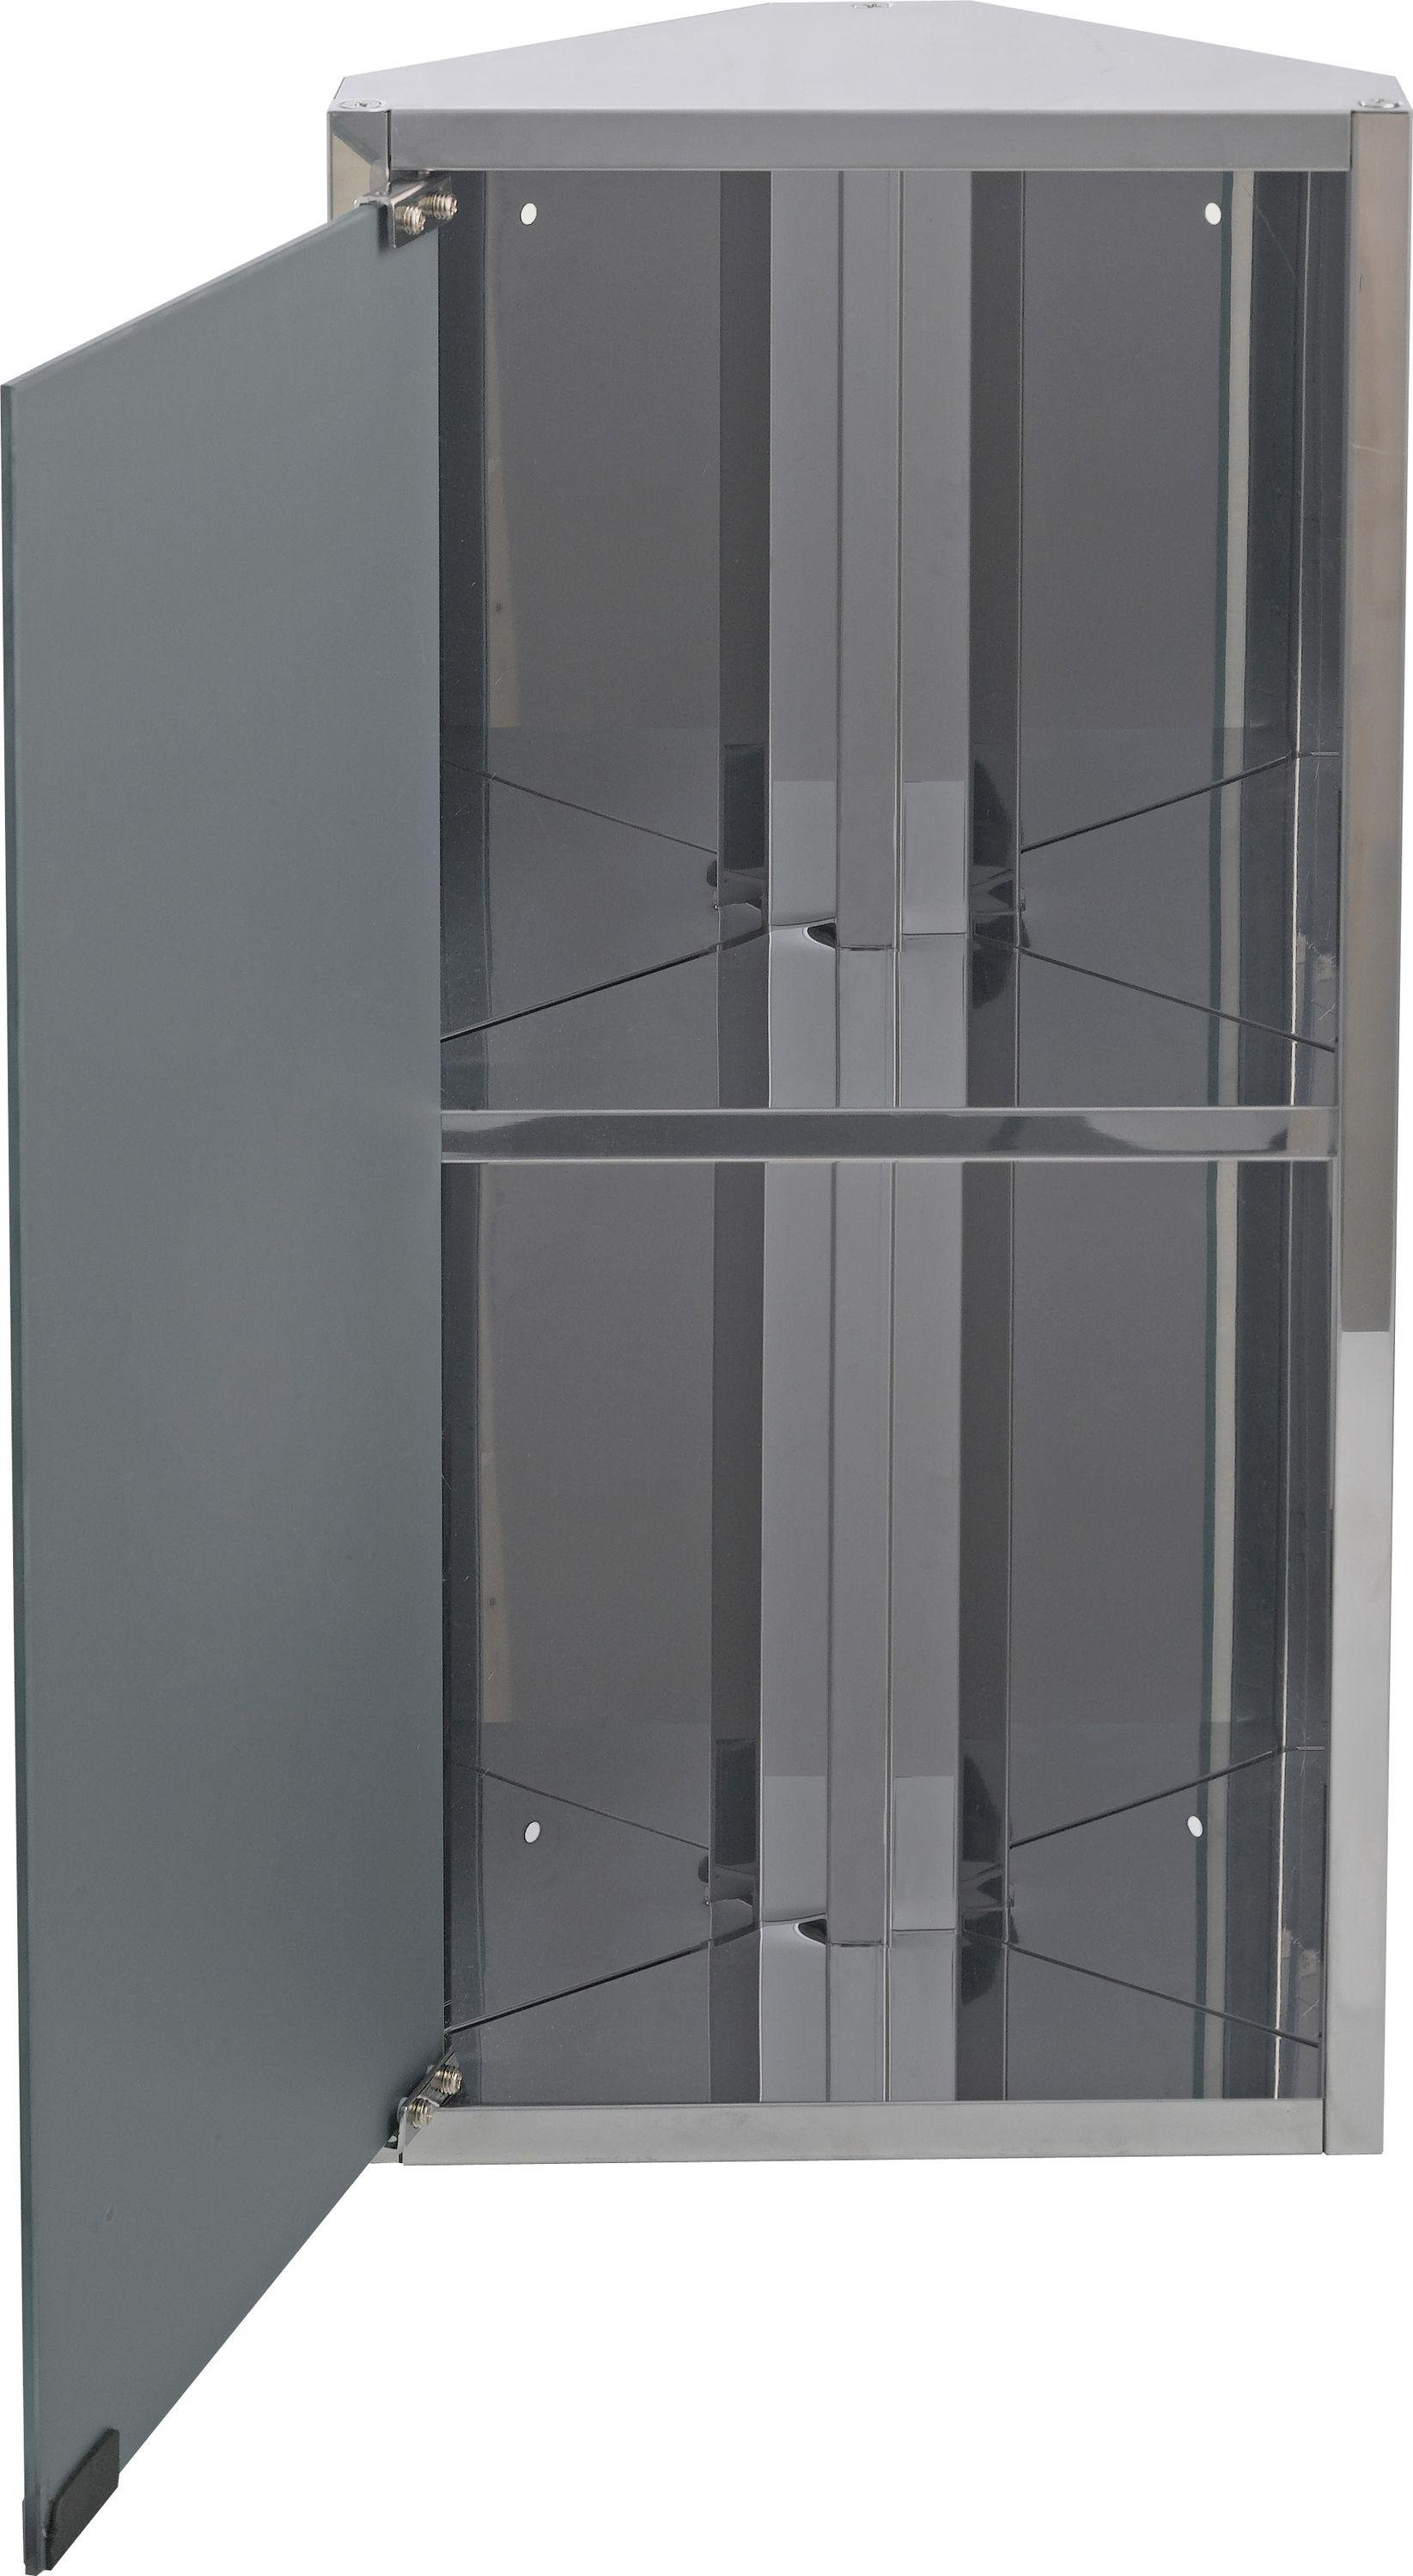 buy home mirrored bathroom corner cabinet - stainless steel at